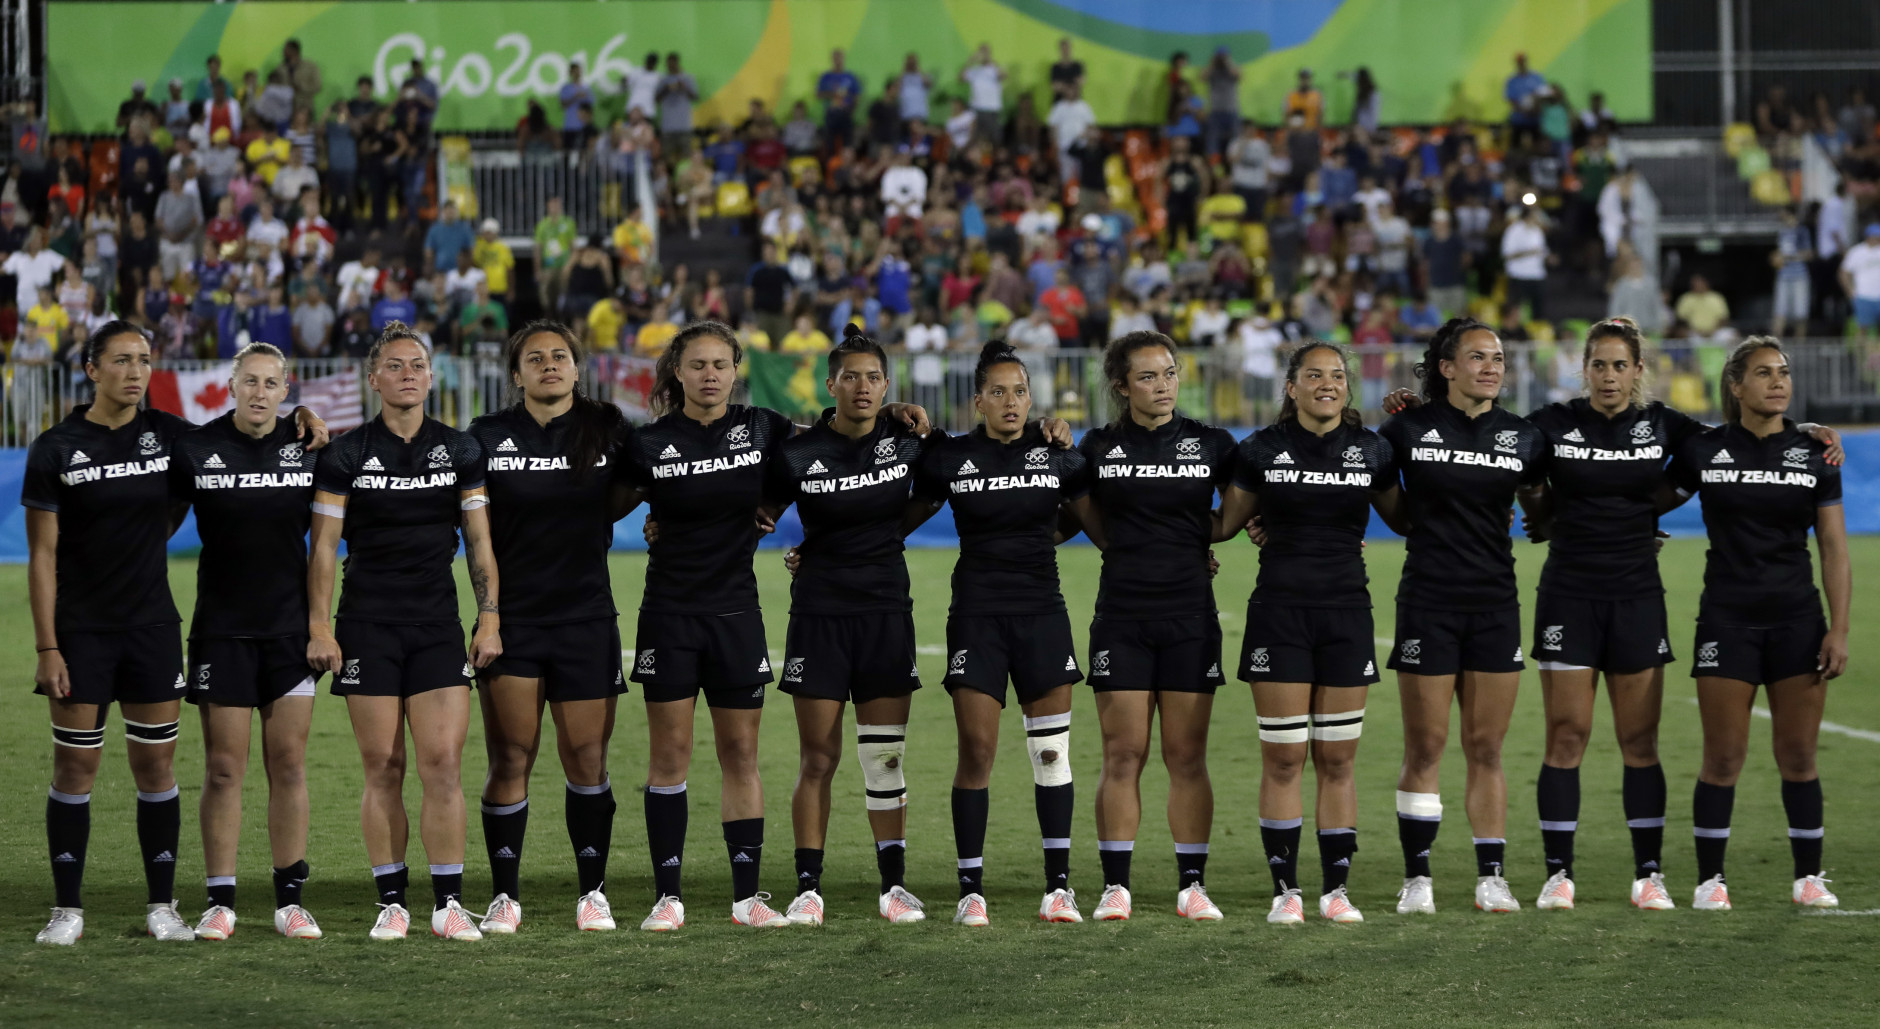 New Zealand's players line up for the singing of the national anthem during the women's rugby sevens gold medal match against Australia at the Summer Olympics in Rio de Janeiro, Brazil, Monday, Aug. 8, 2016. (AP Photo/Themba Hadebe)